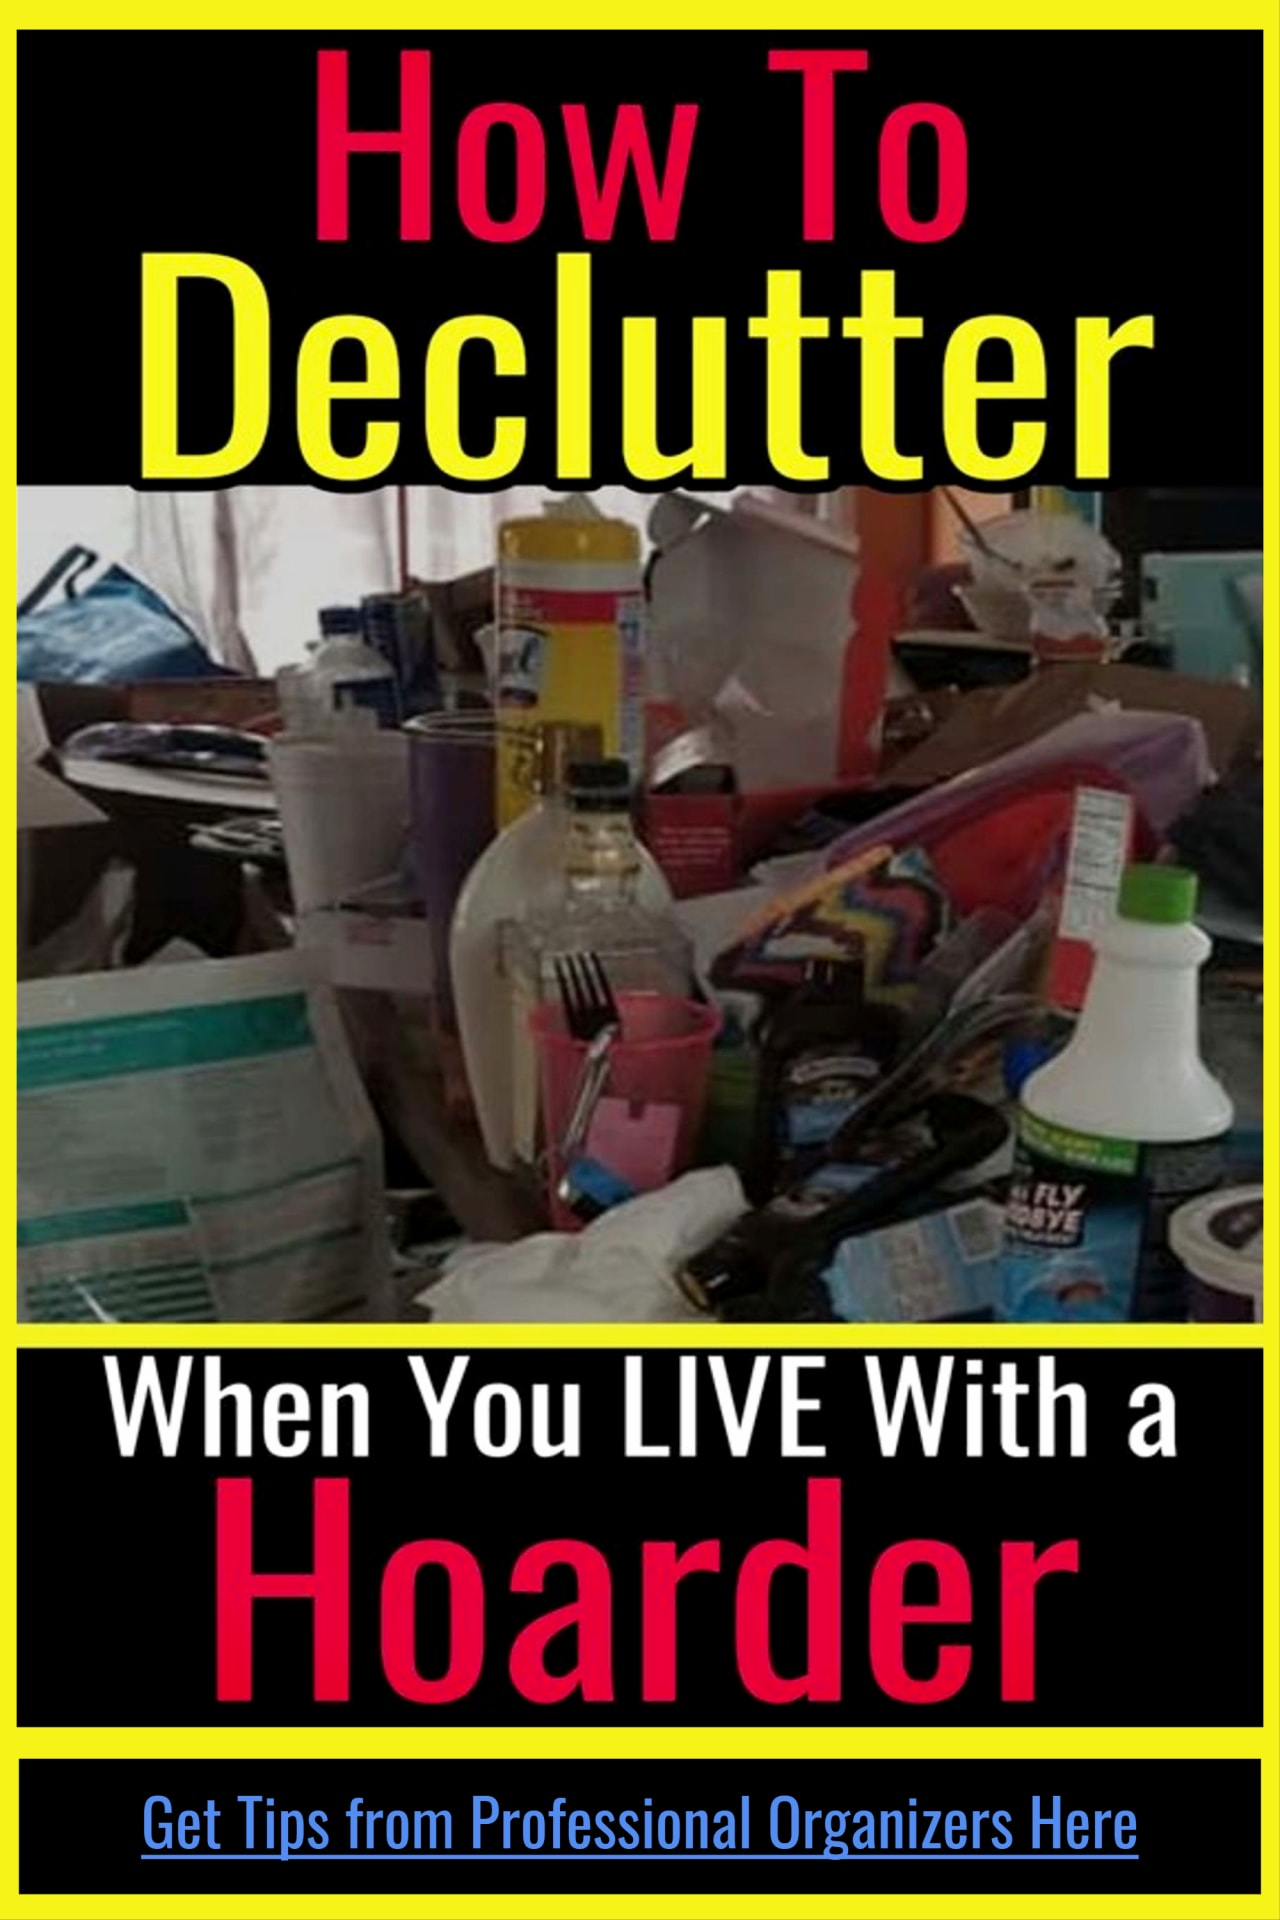 Declutter and organize your entire house in one hour a day even if you live with a hoarder.  Declutter challenge to declutter and organize your home WITHOUT feeling overwhelmed